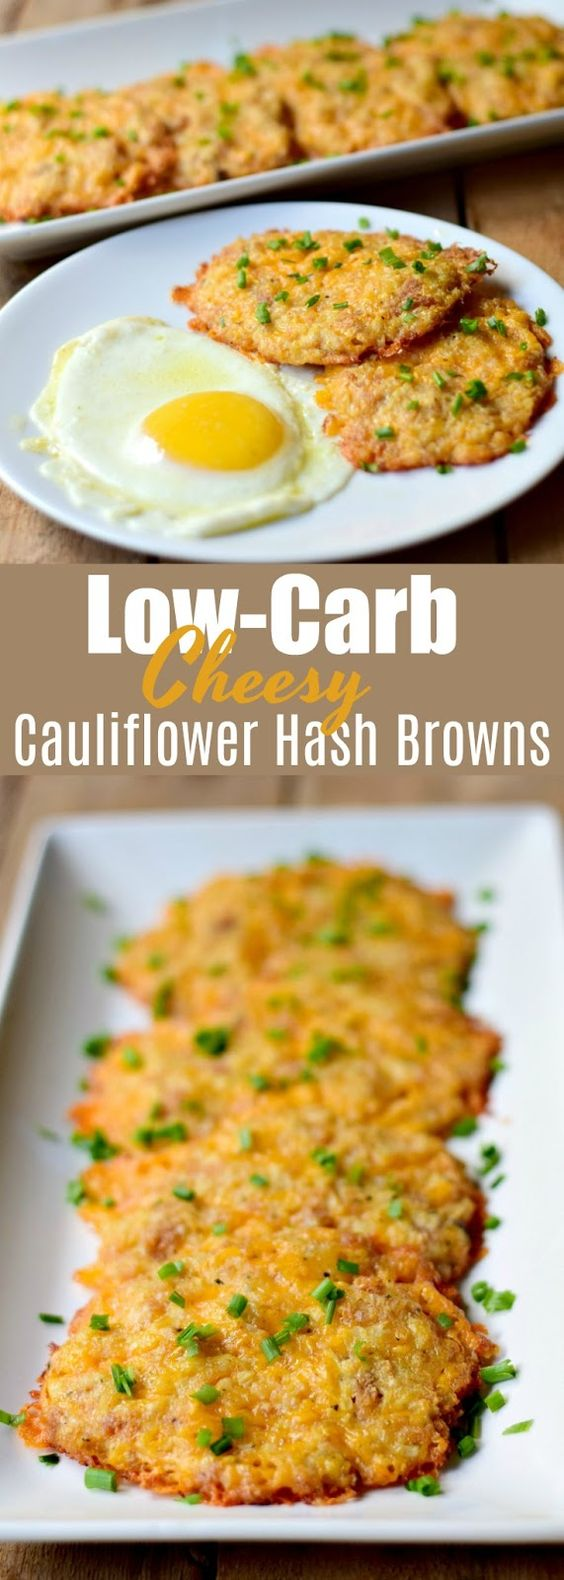 LOW CARB CHEESY CAULIFLOWER HASH BROWNS